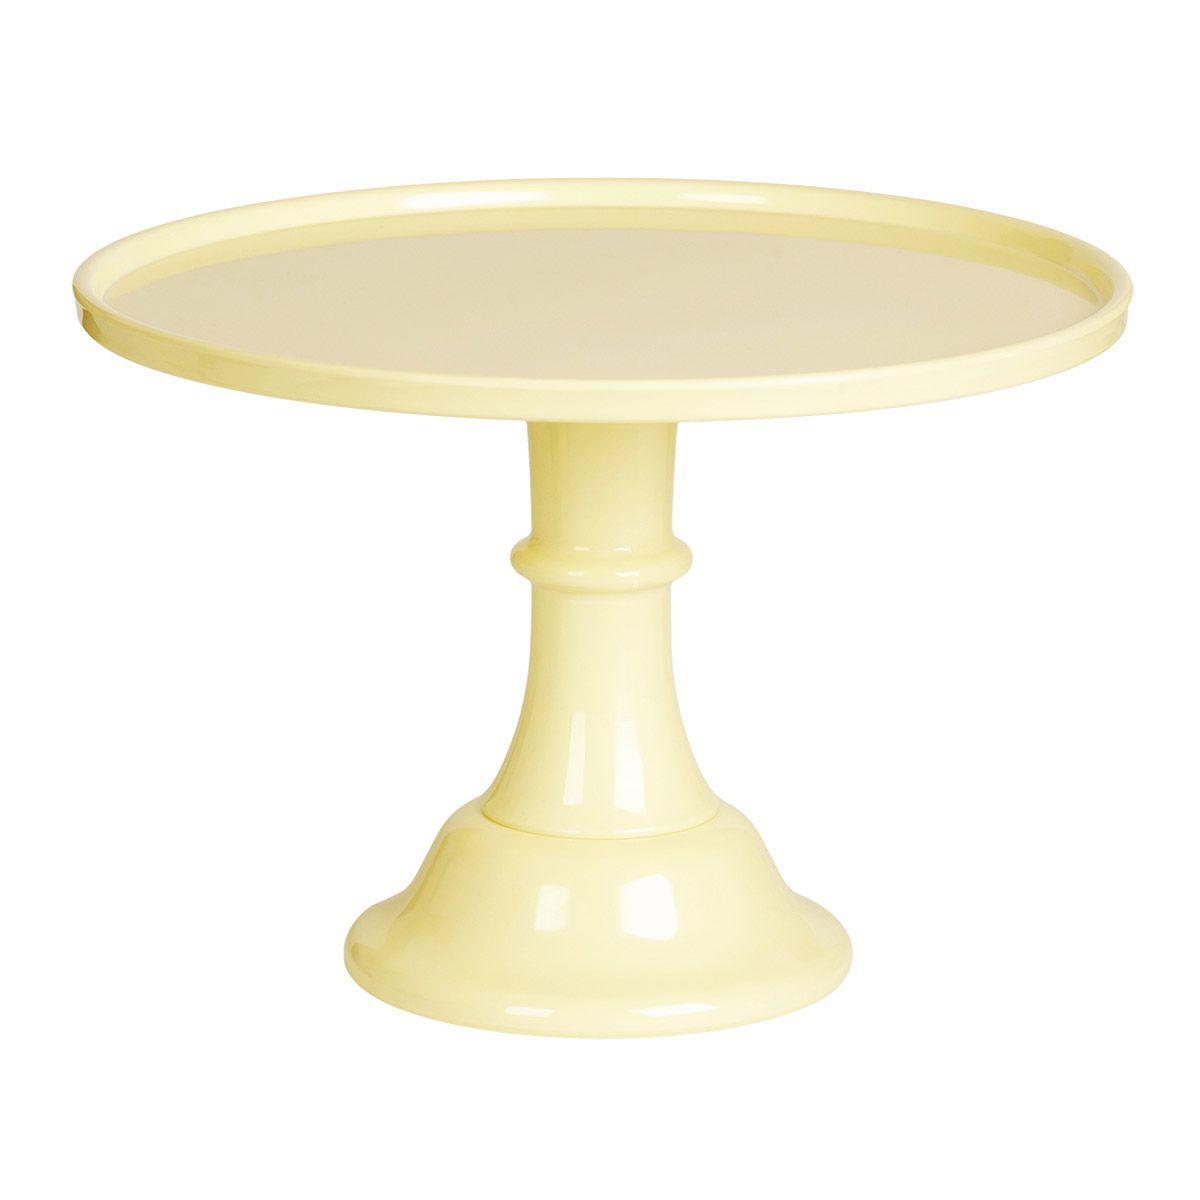 "ALLC Cake Stand Large Yellow (11.9"")"